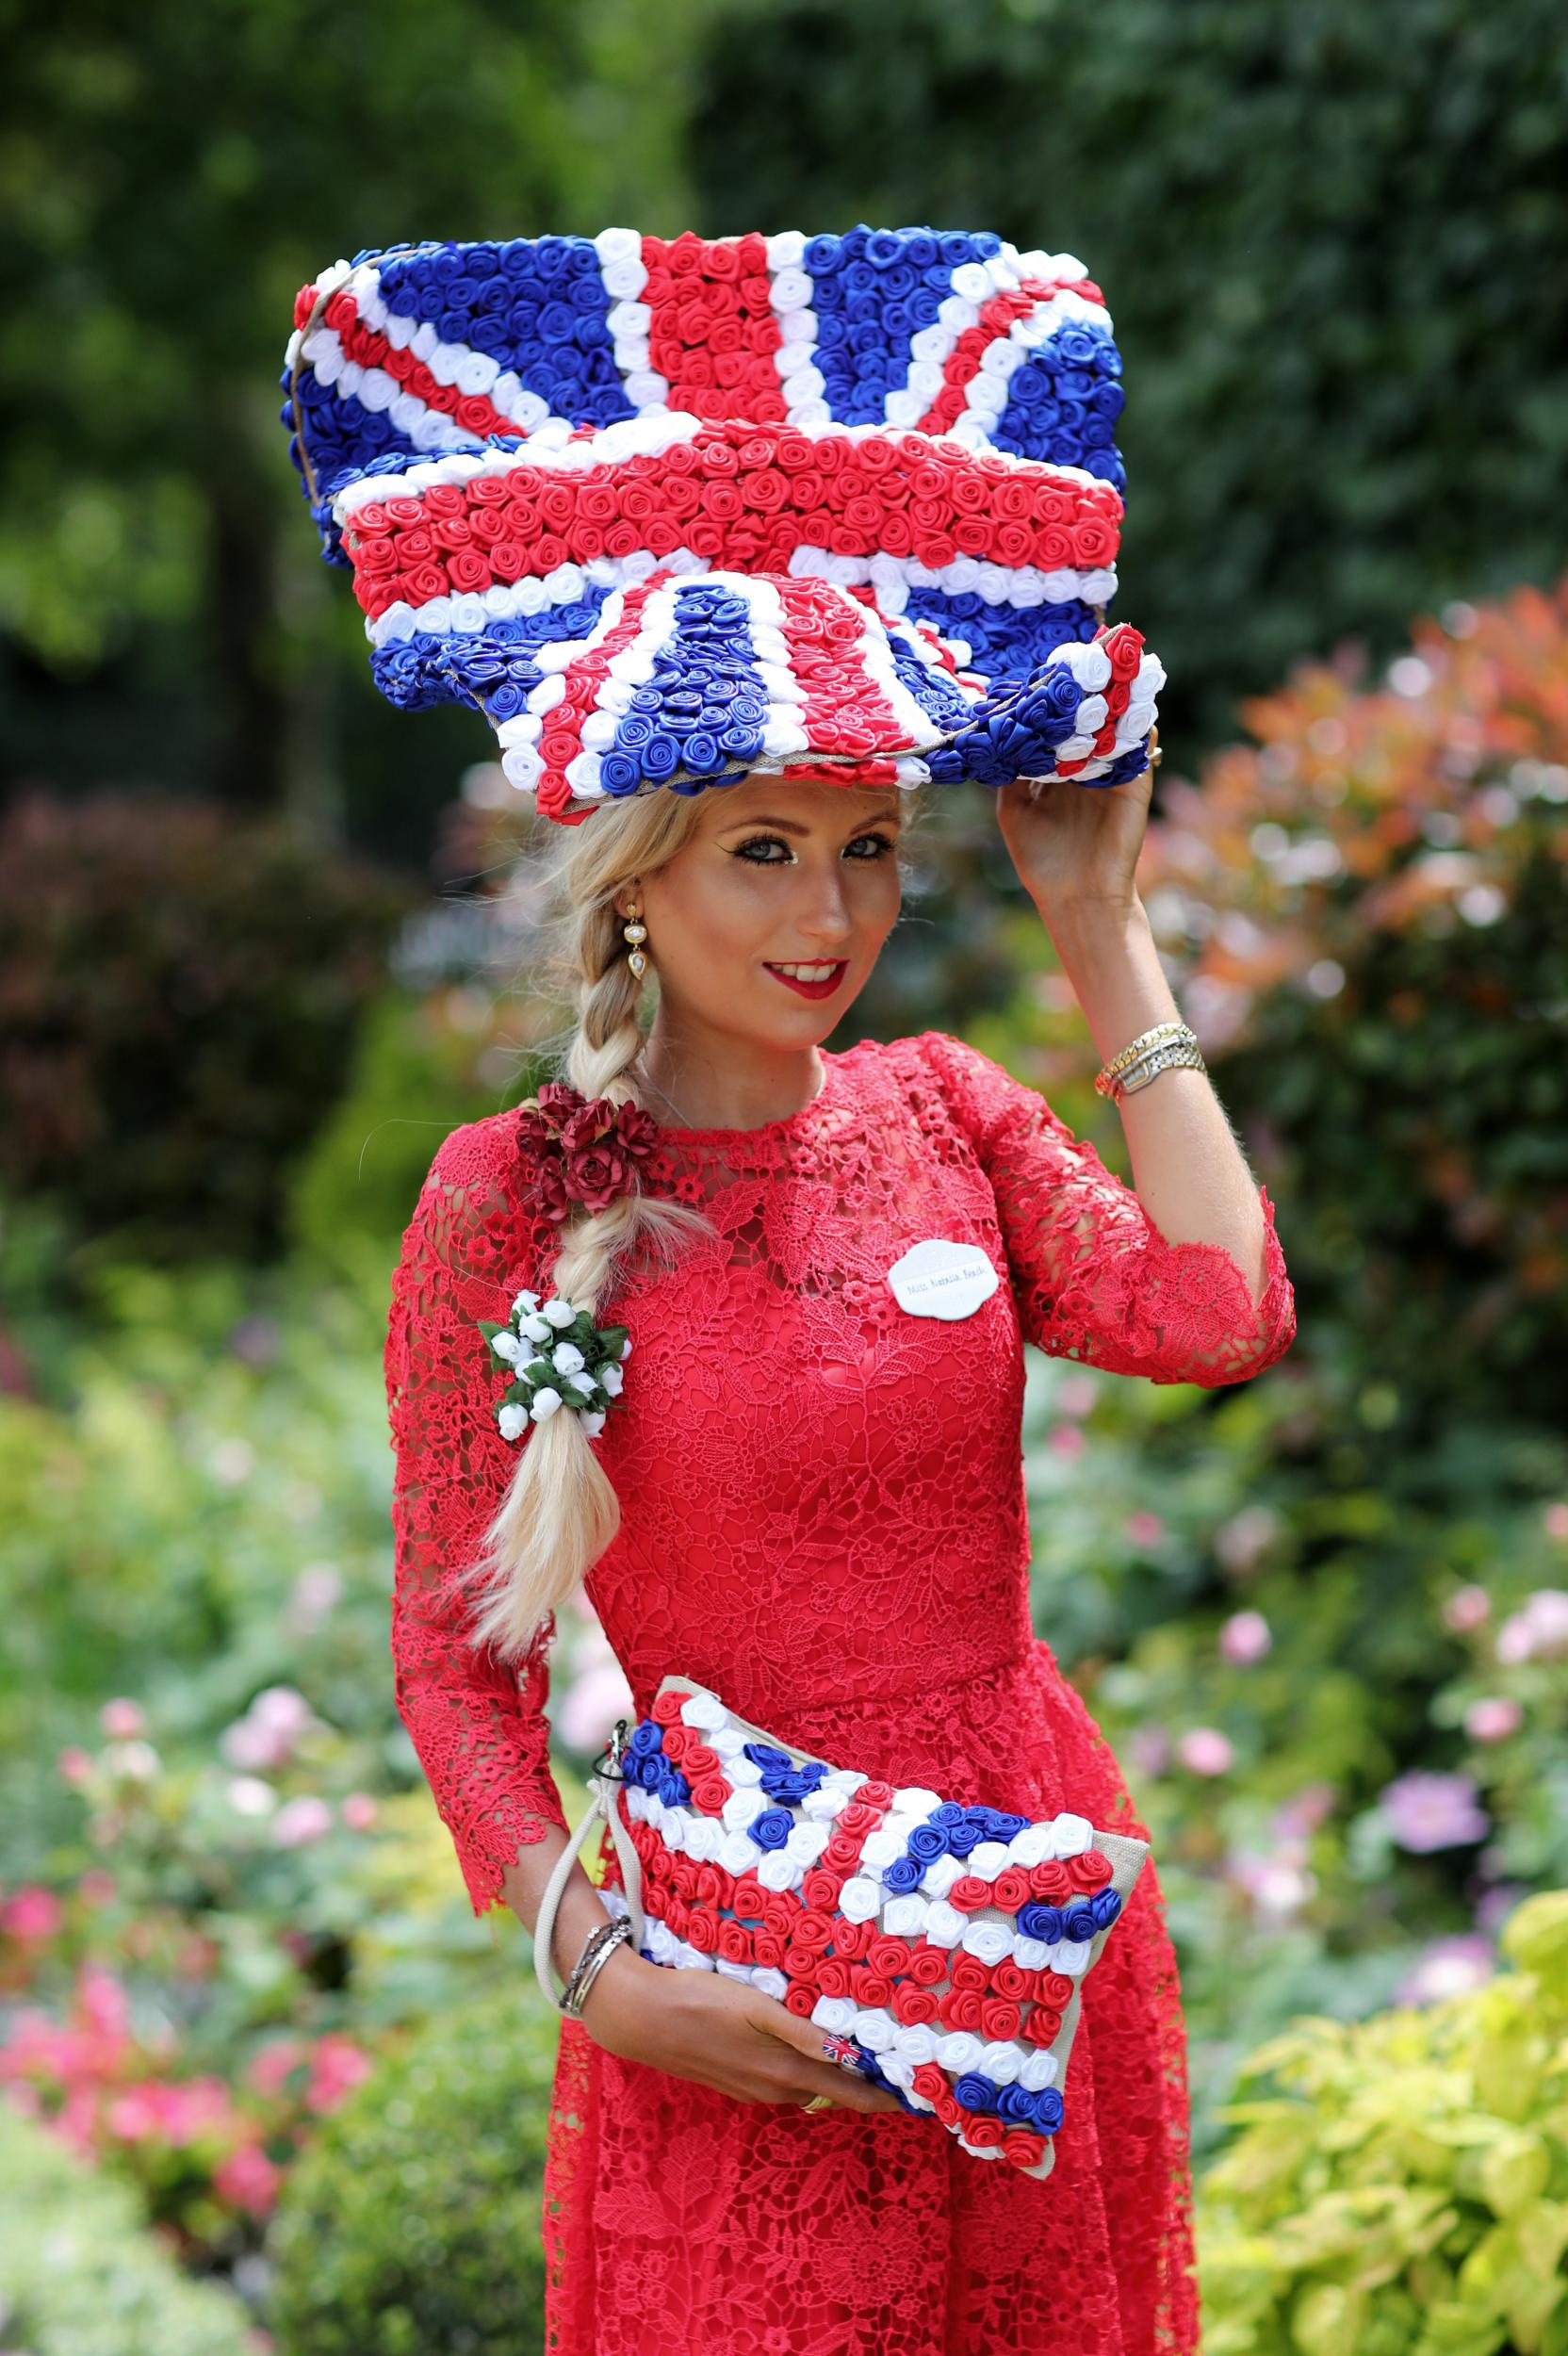 1c1ca6a1a55 Royal Ascot dress code: What to wear at the racing event, according ...